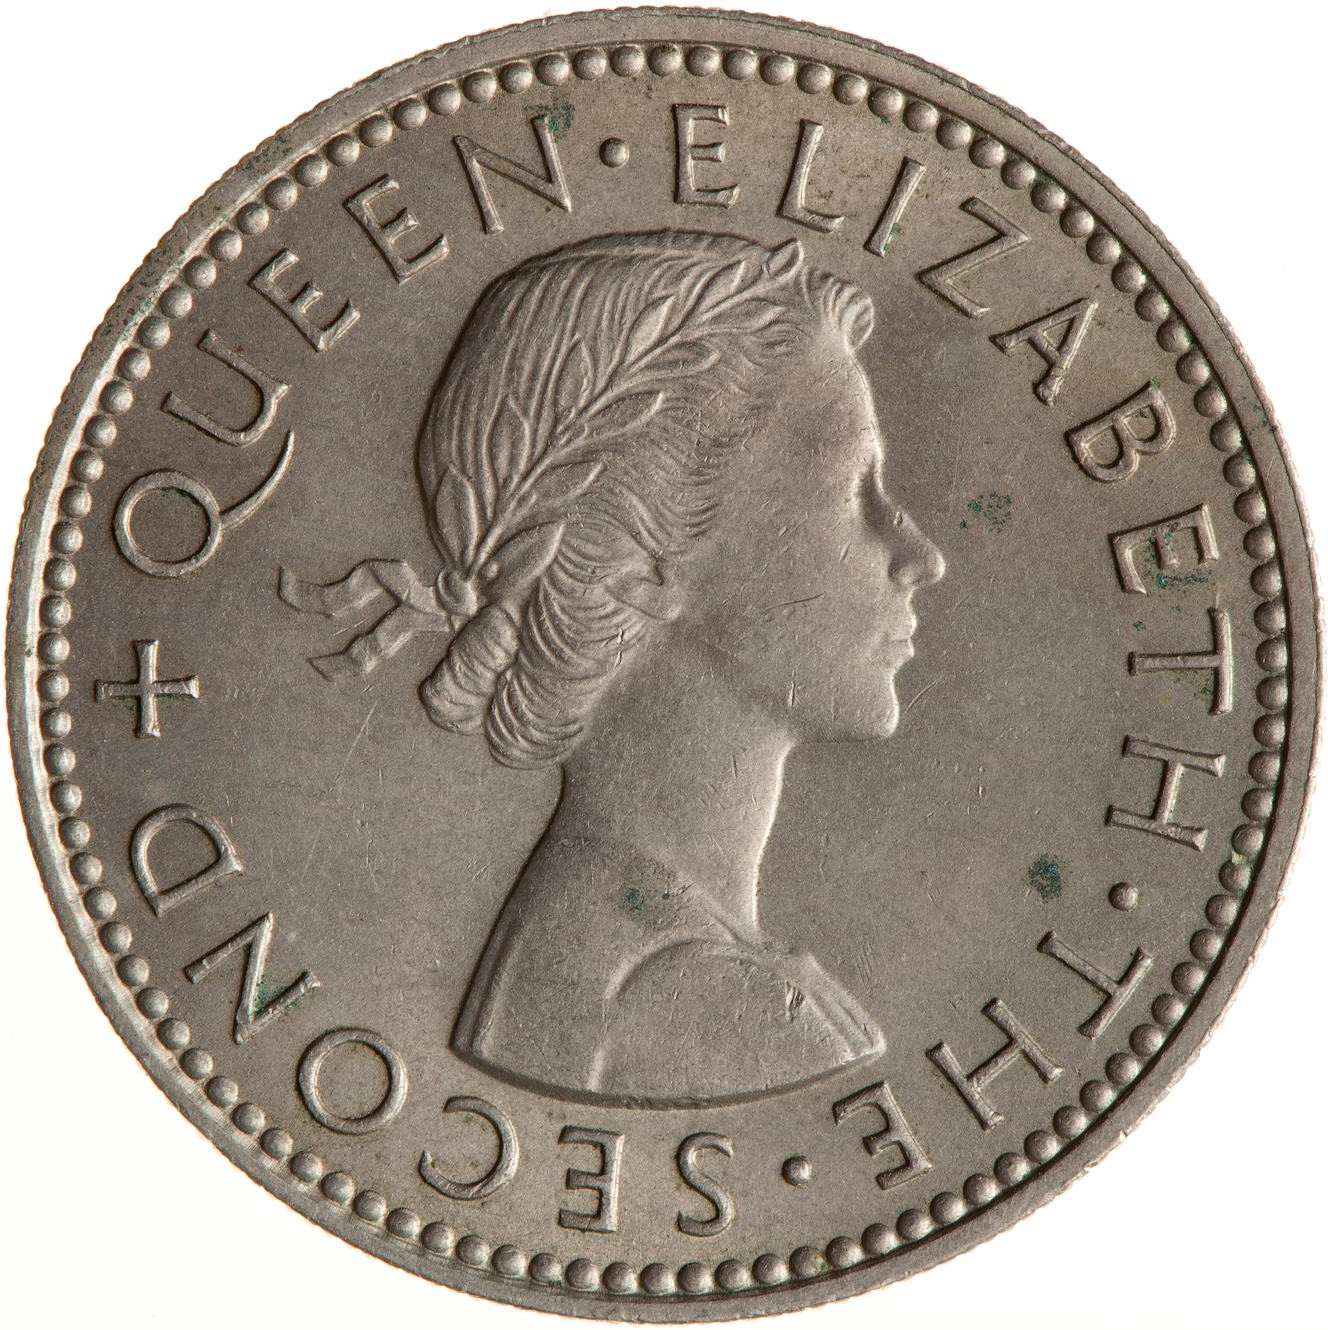 Shilling 1958: Photo Coin - 1 Shilling, New Zealand, 1958